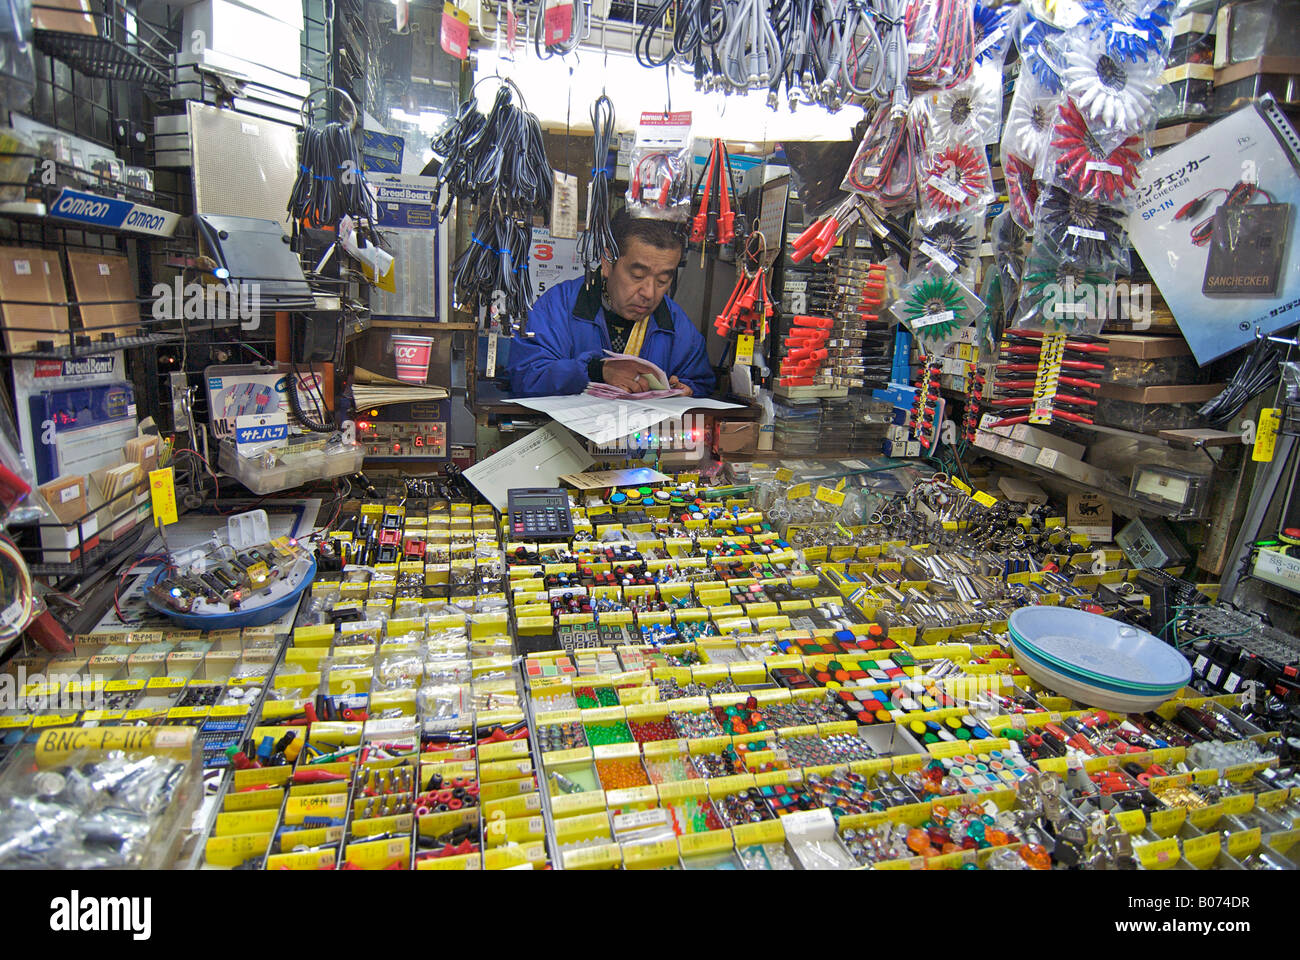 Small electronics component retailer in the market at Akihabara, ELECTRIC TOWN, Tokyo, Japan - Stock Image